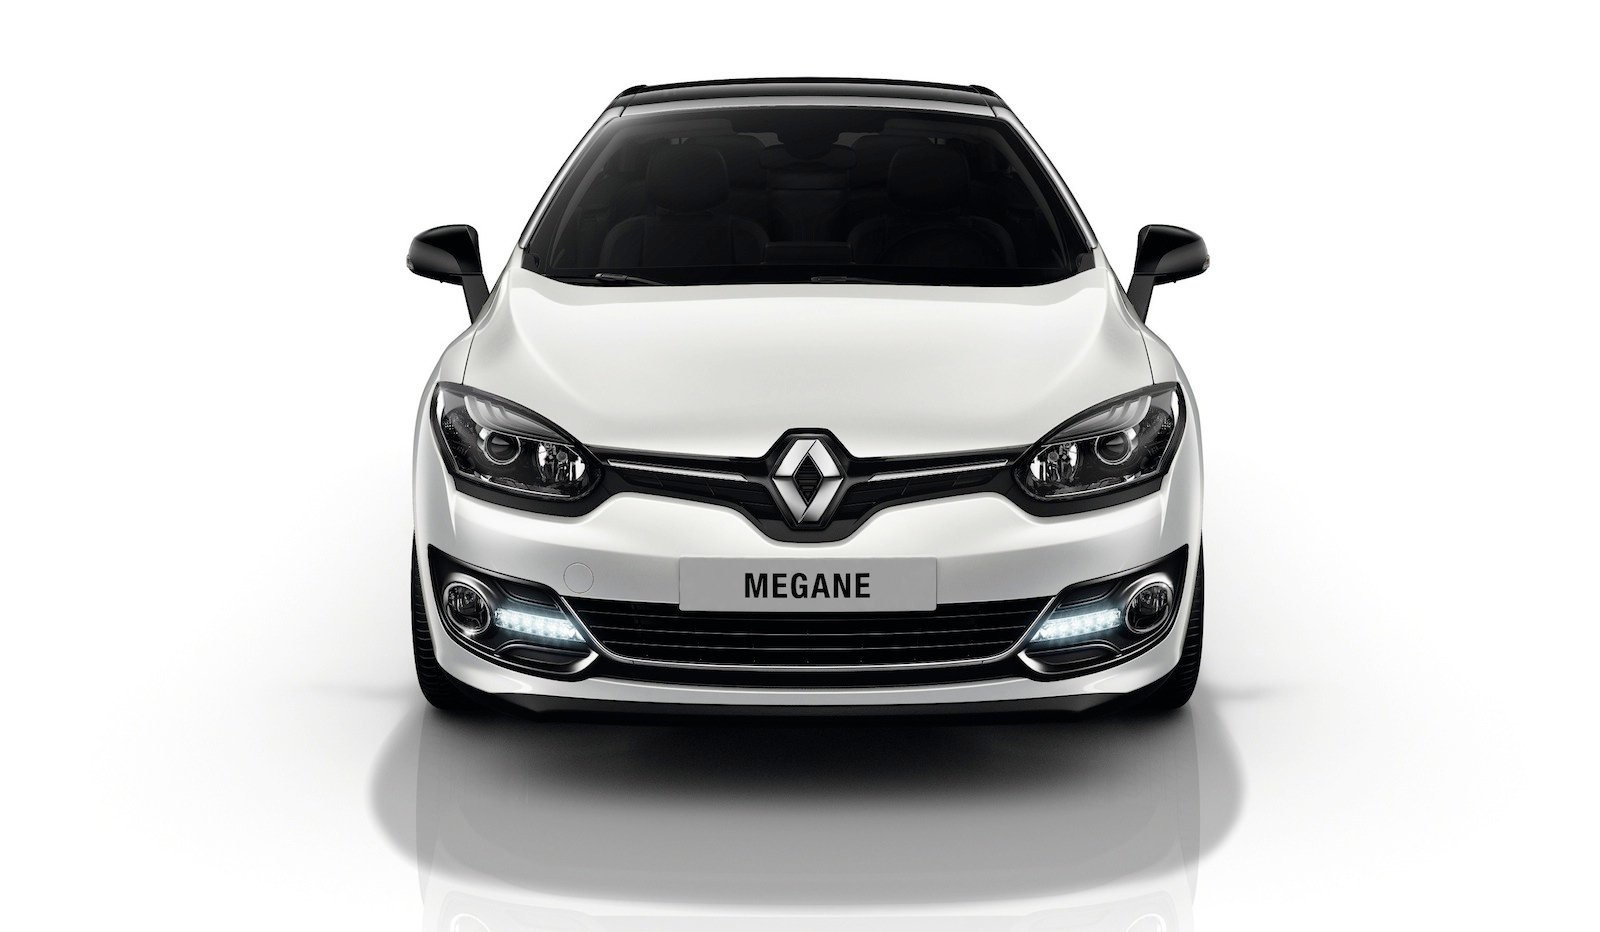 2014 renault megane cc facelift revealed photos caradvice. Black Bedroom Furniture Sets. Home Design Ideas